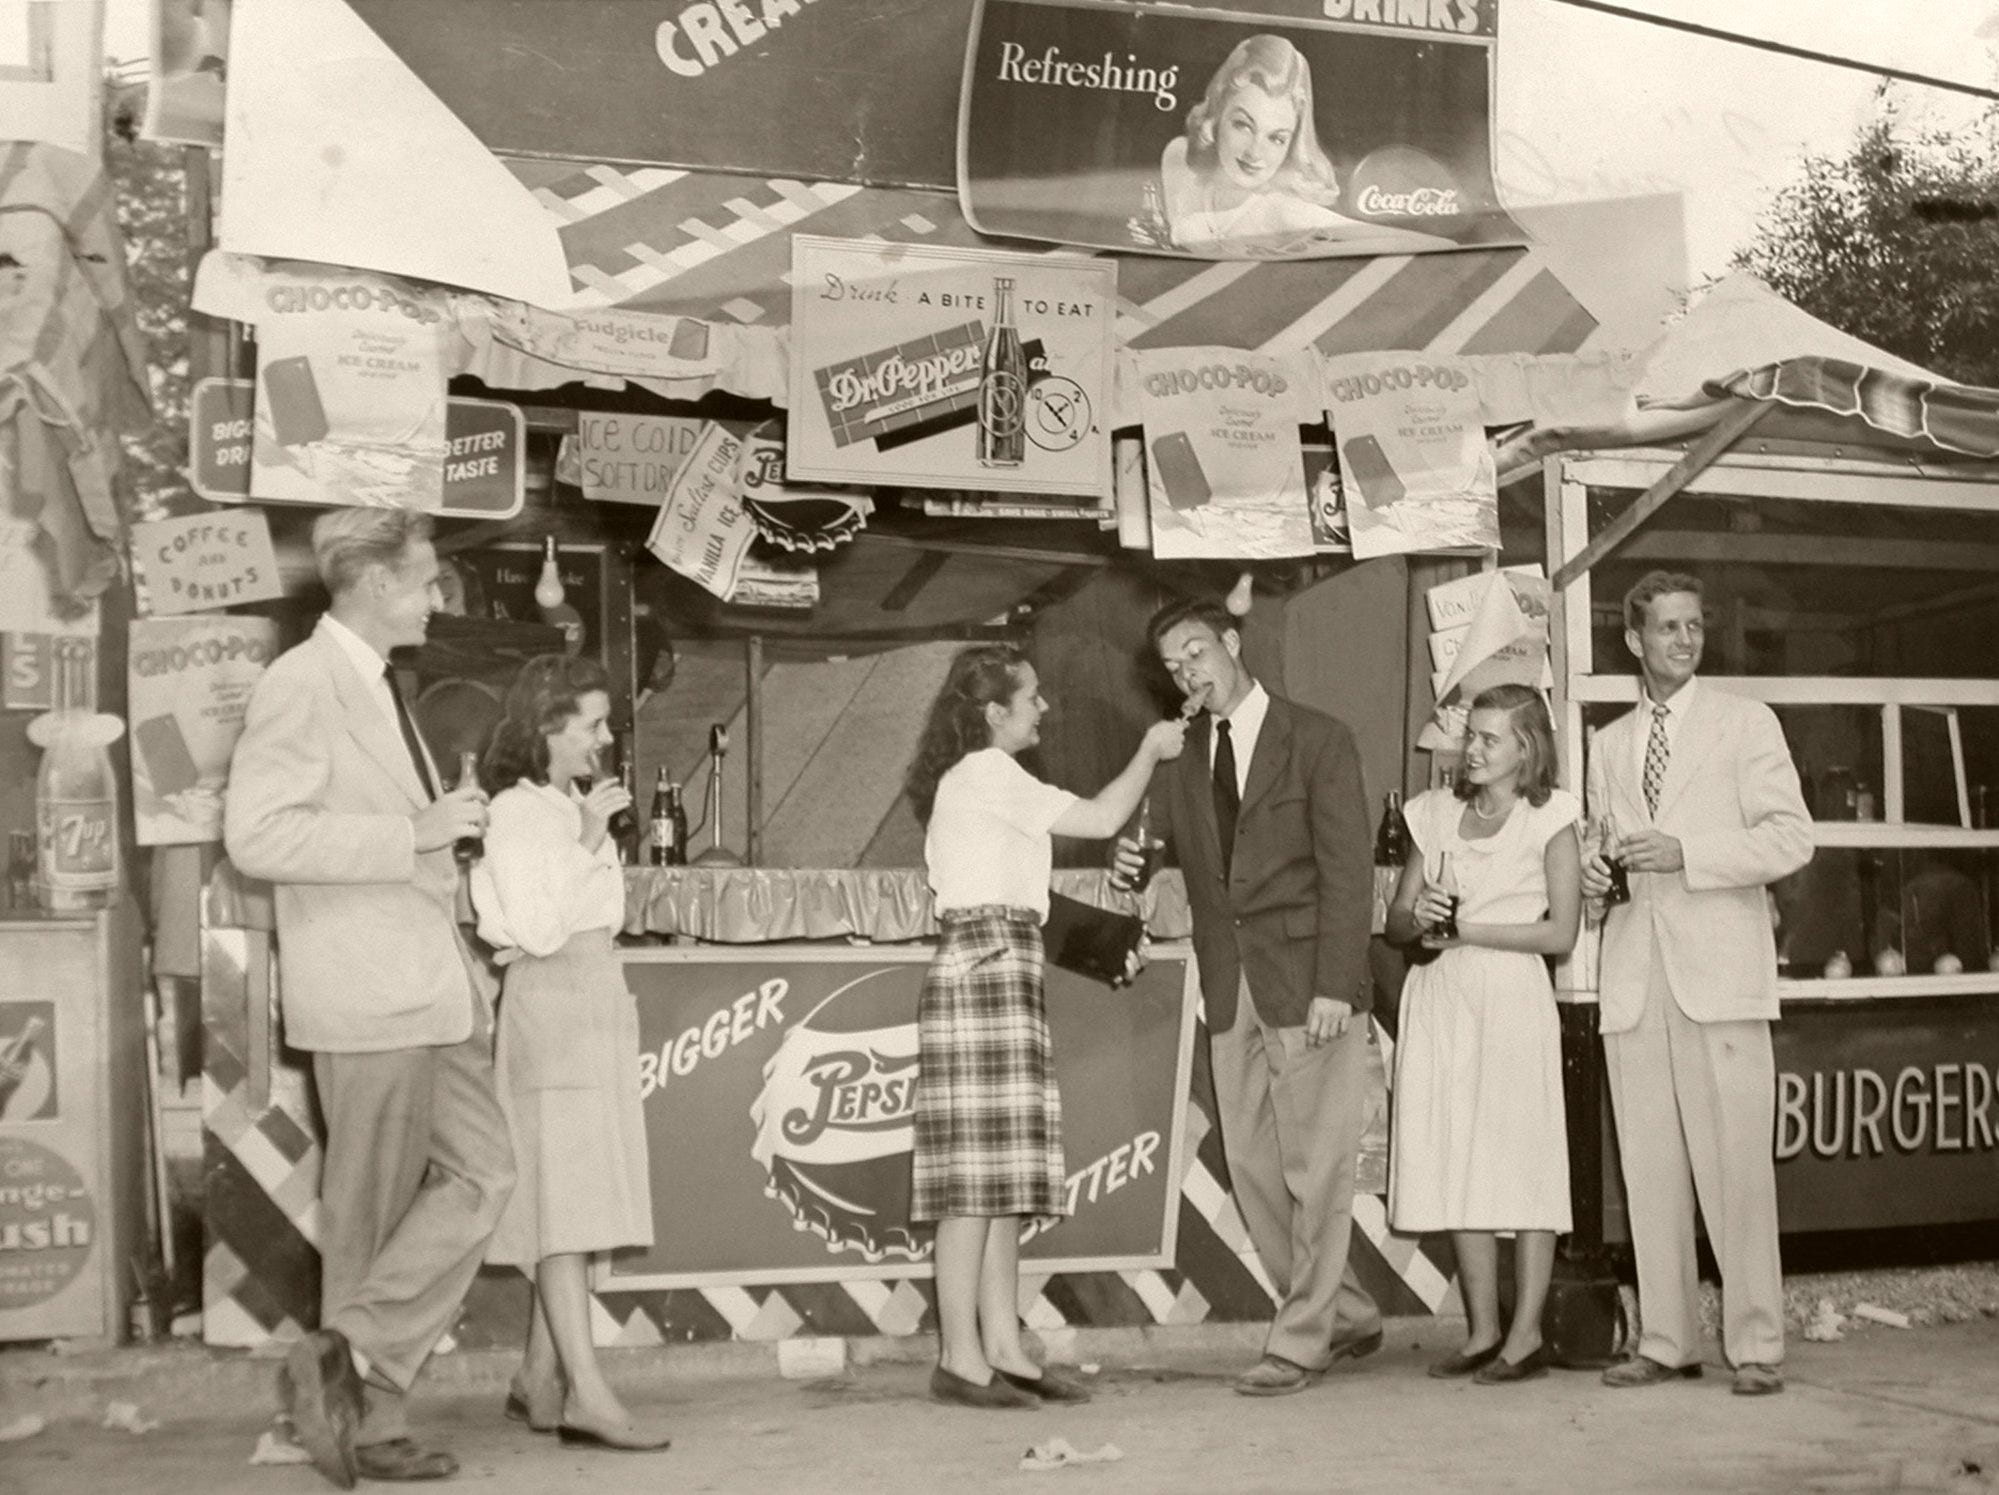 At the Kentucky State Fair in 1947, a hot day called for soft drinks and refreshing ice-cream treats. From left were Gordon, Janey, Elaine, Pete, Sara and Pat.